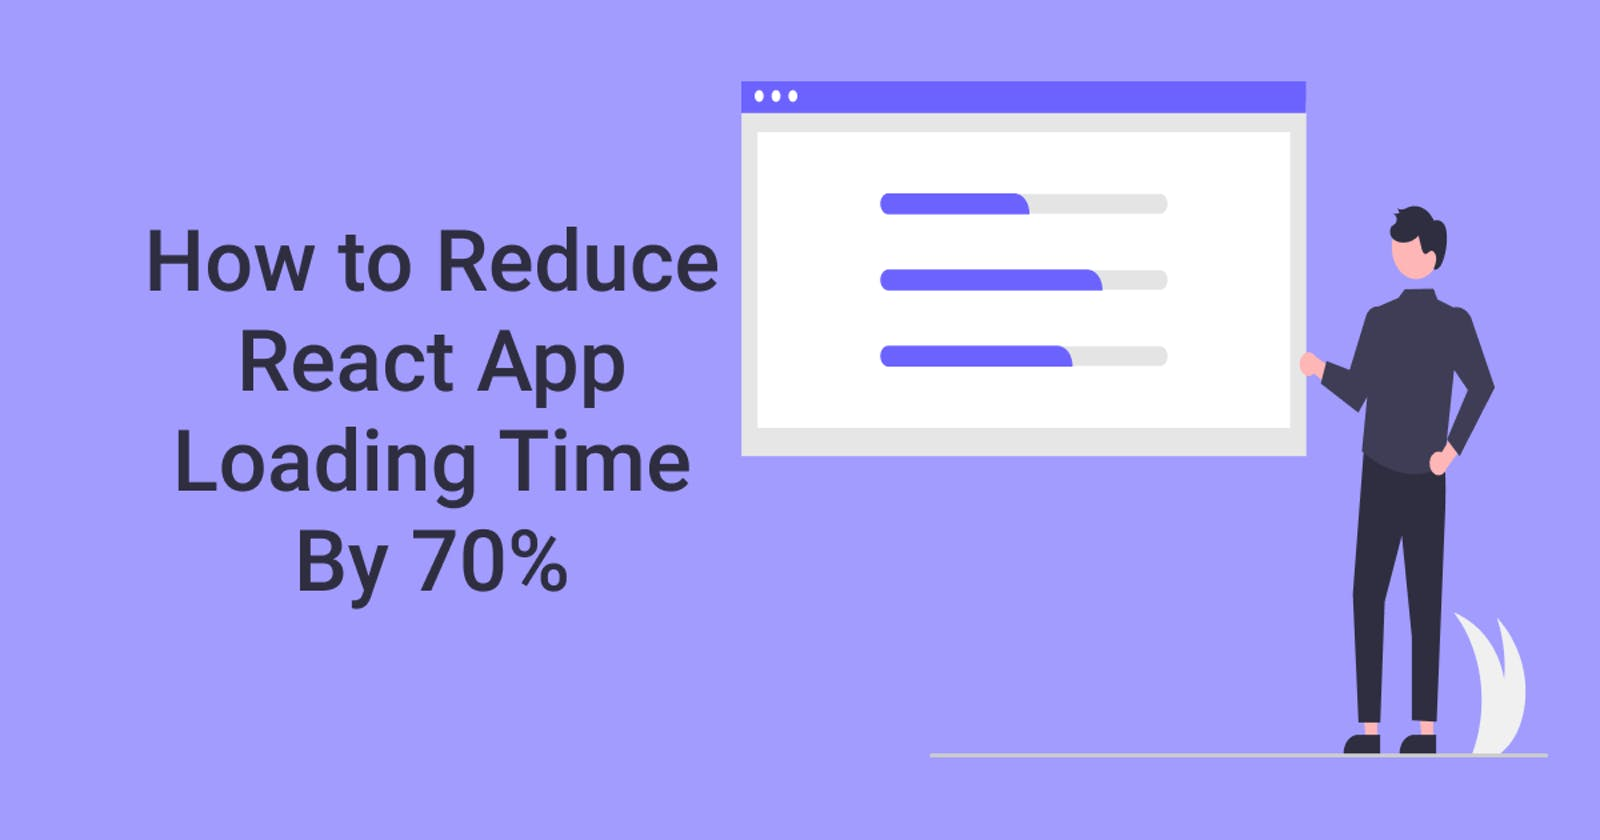 How to Reduce React App Loading Time By 70%